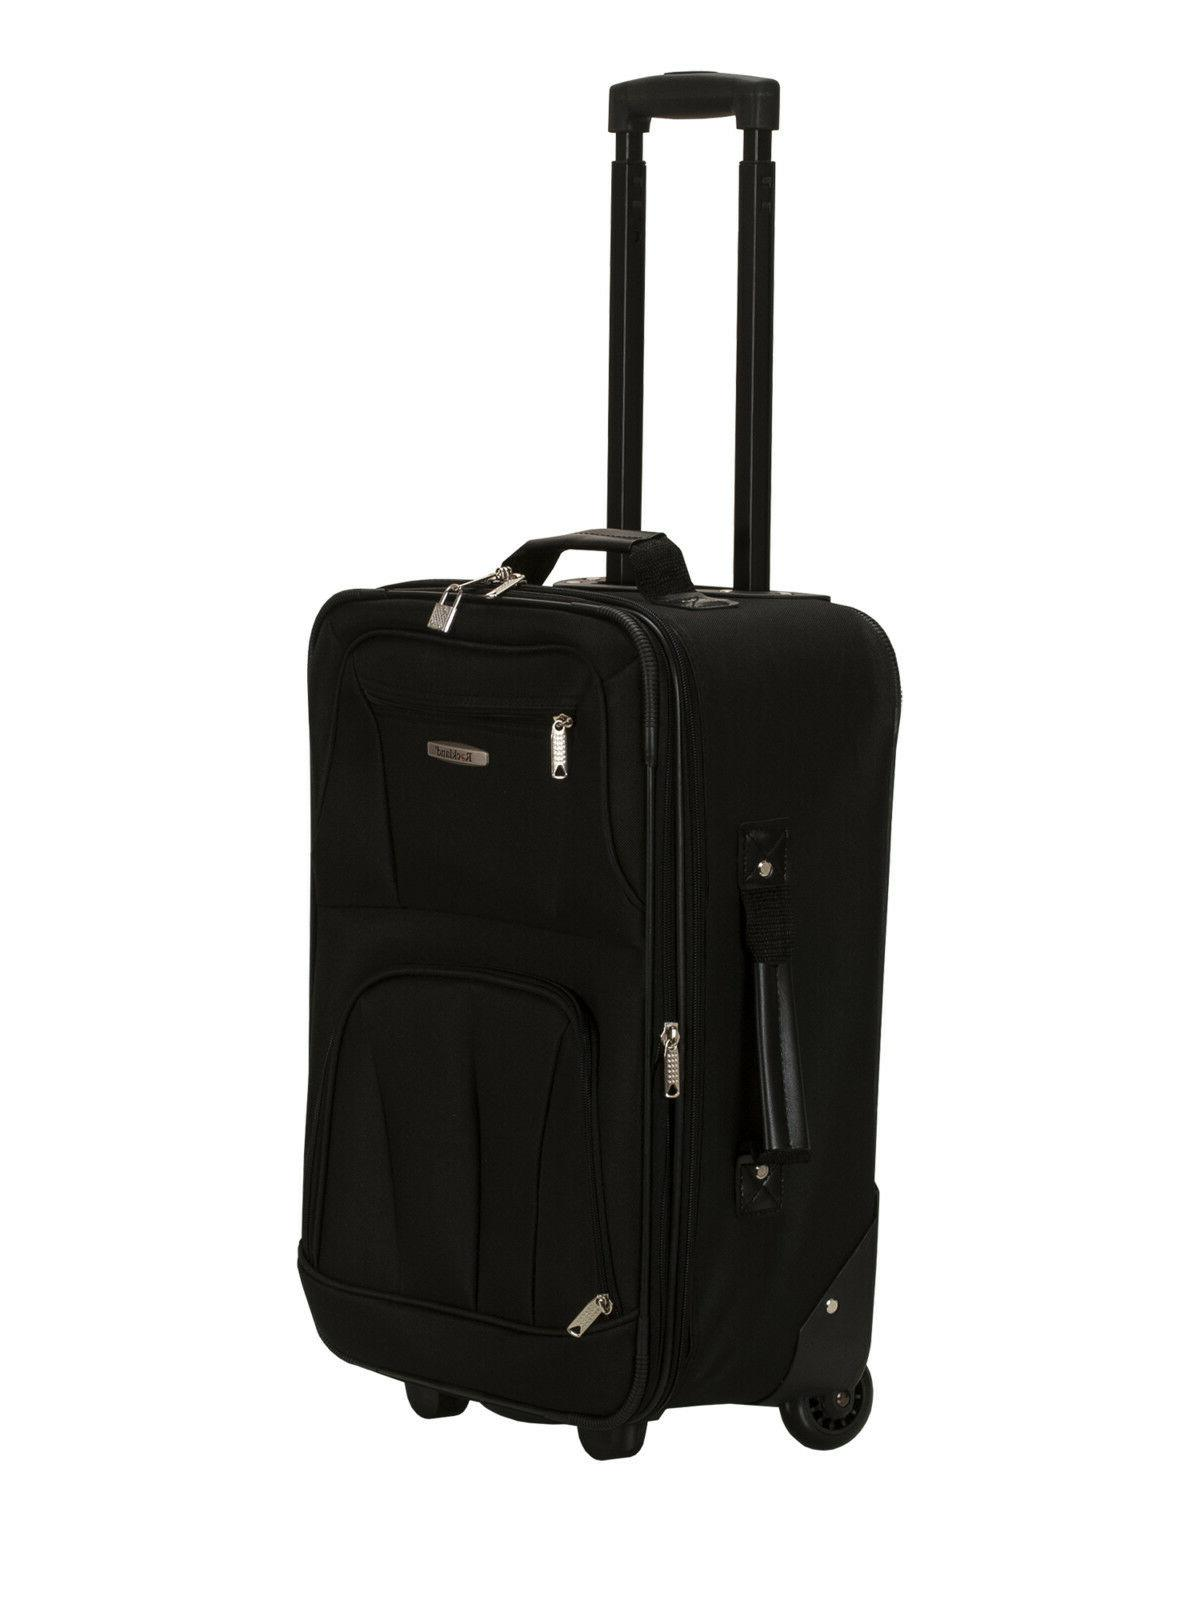 ROCKLAND ABS LUGGAGE BLACK